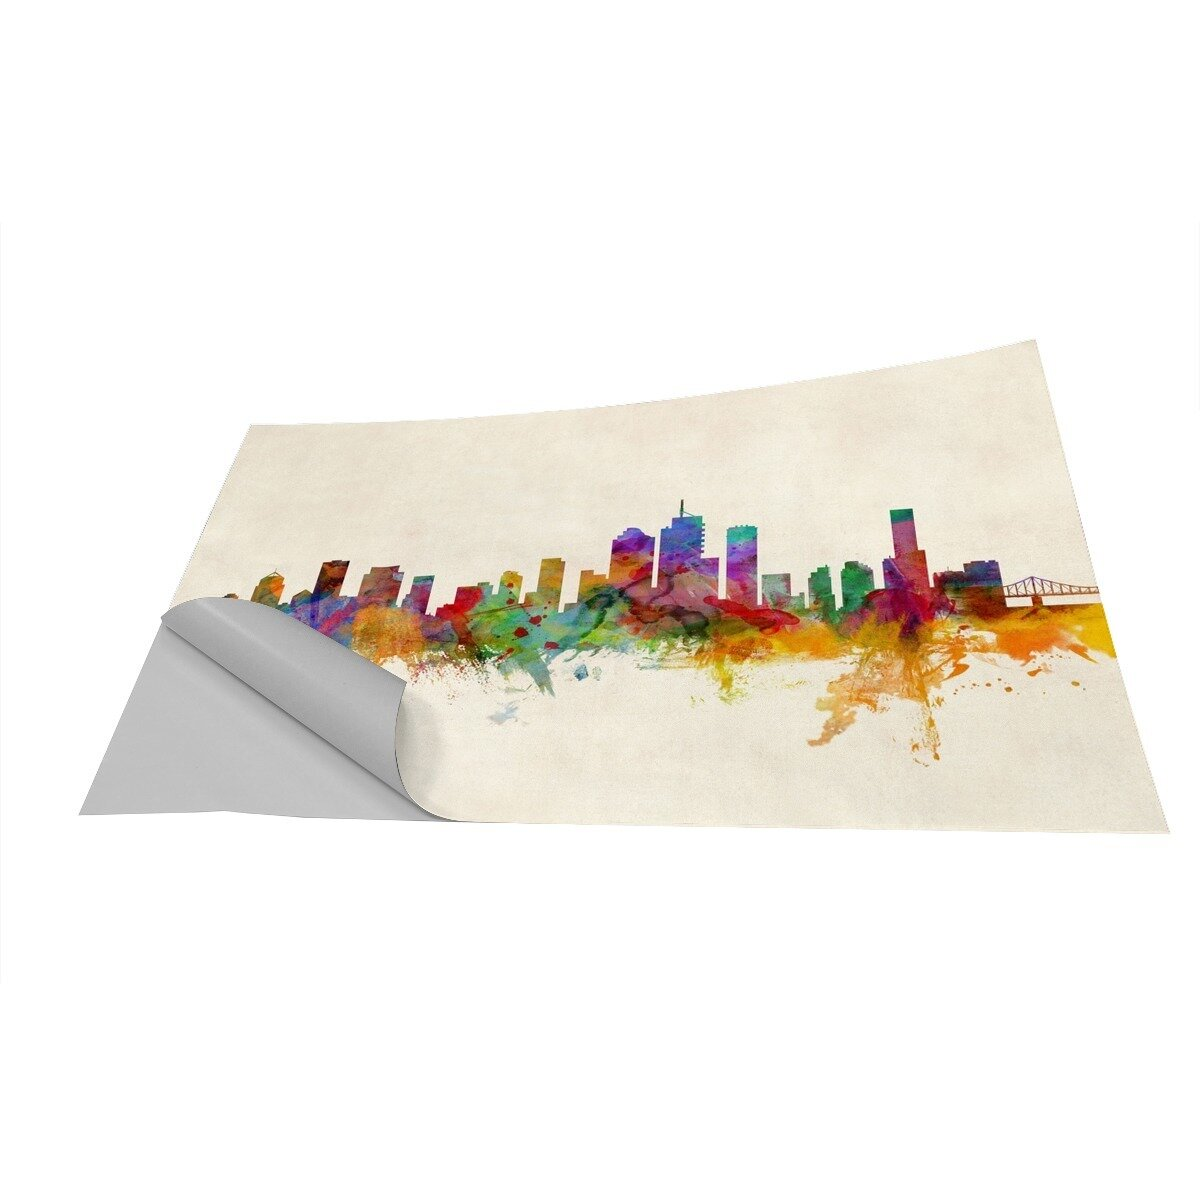 brisbane australia skyline wall mural wayfair modern skyline designs home decor accessories amp by